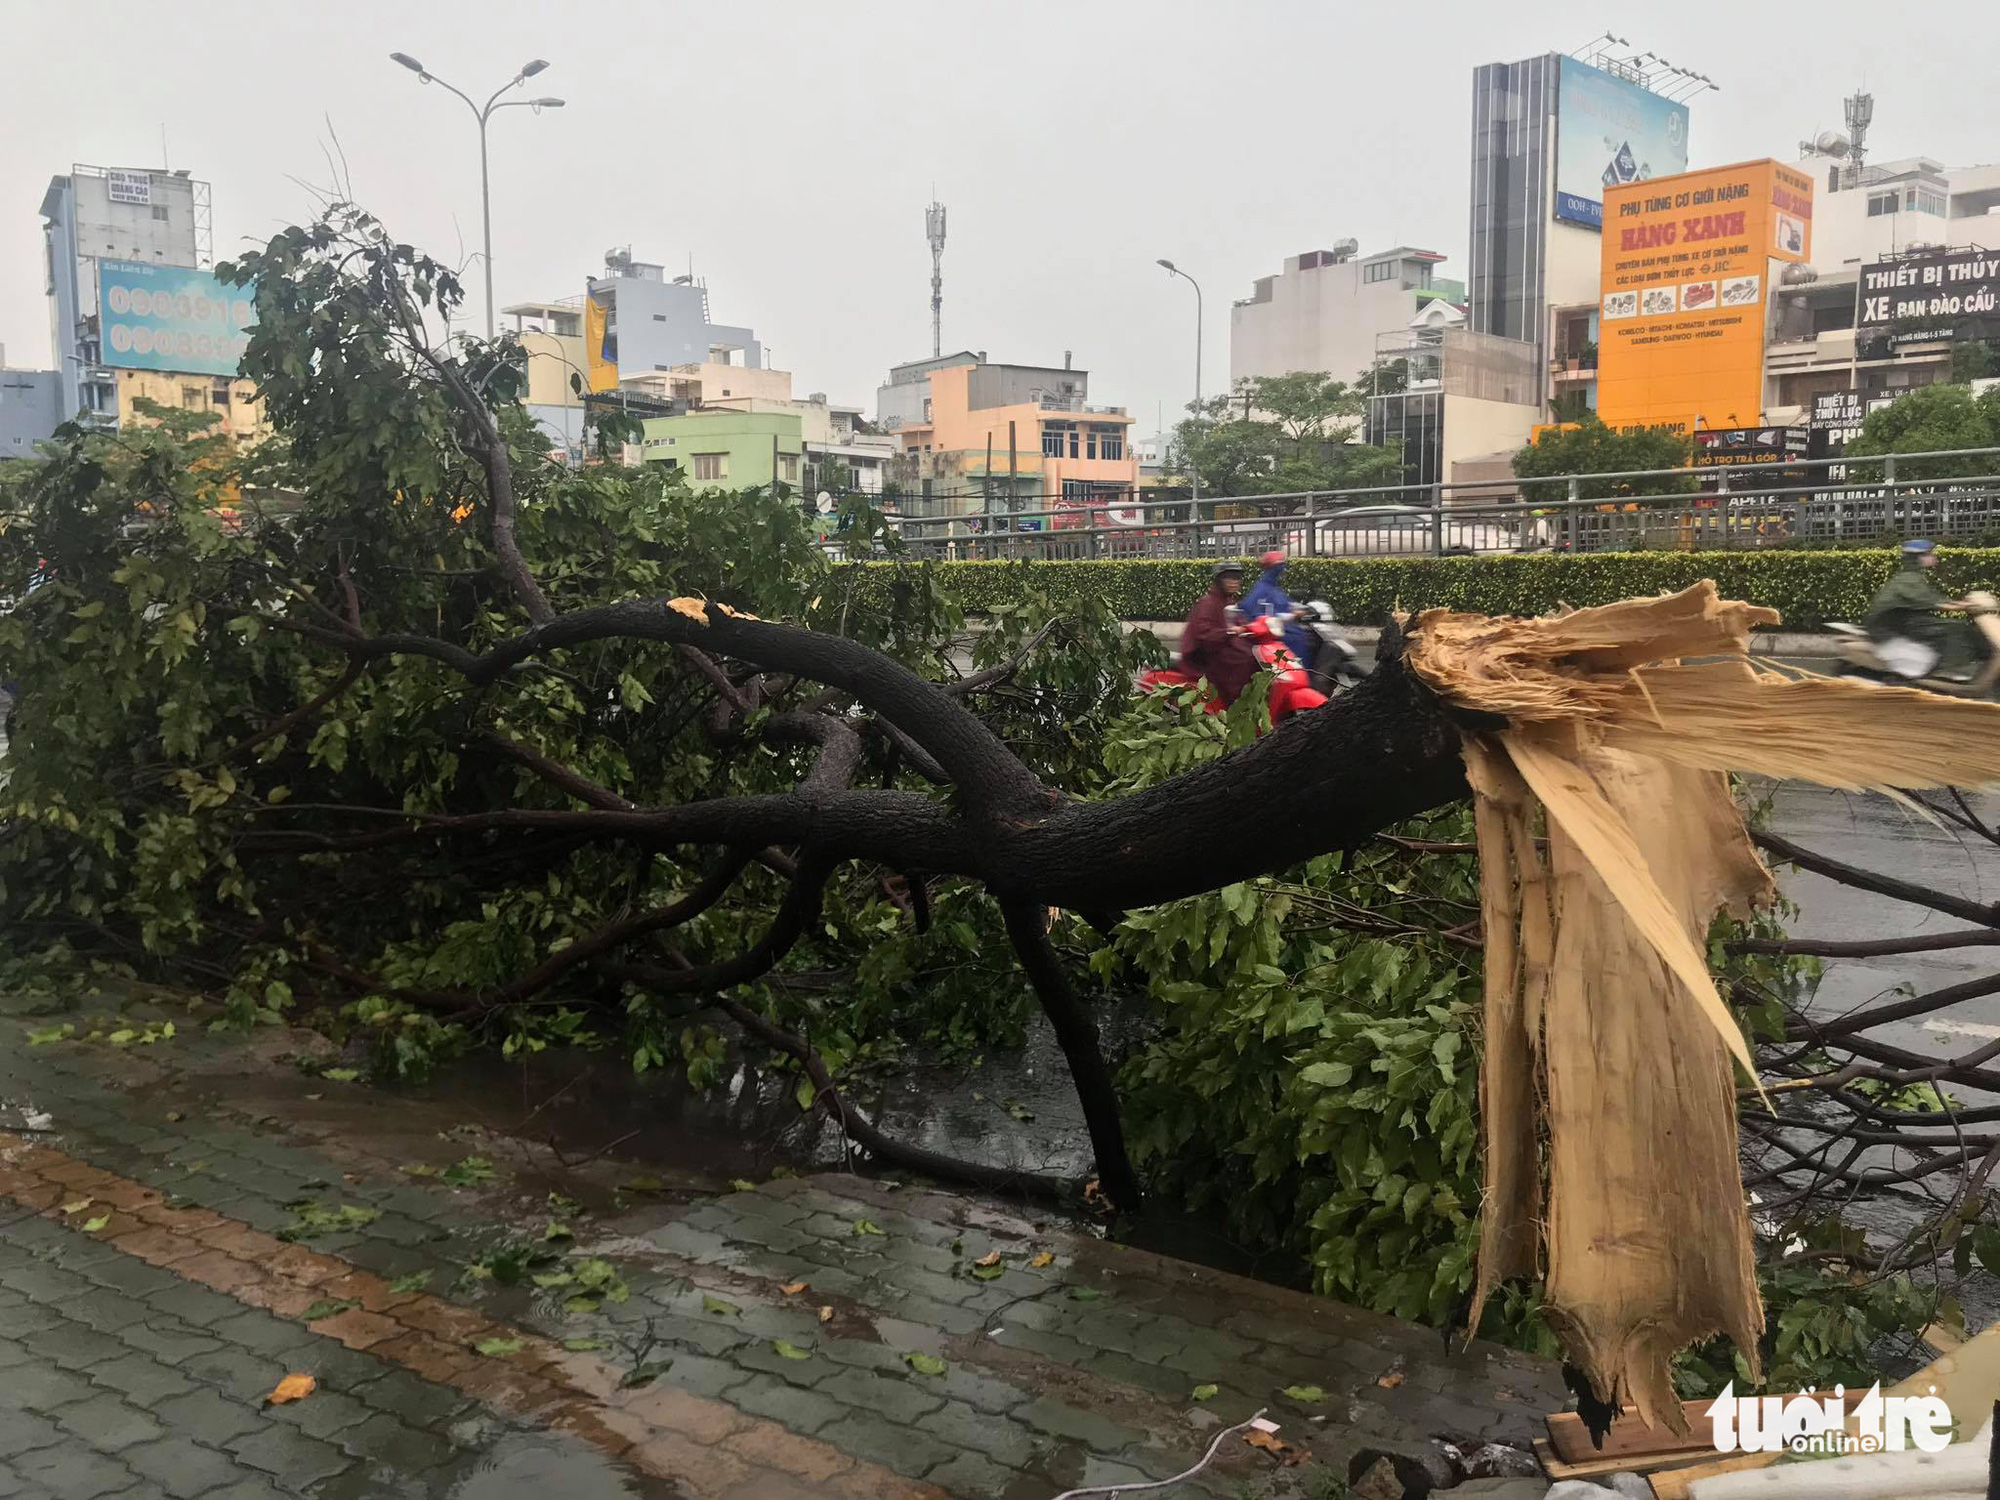 Downpour floods streets, uproots trees in Ho Chi Minh City